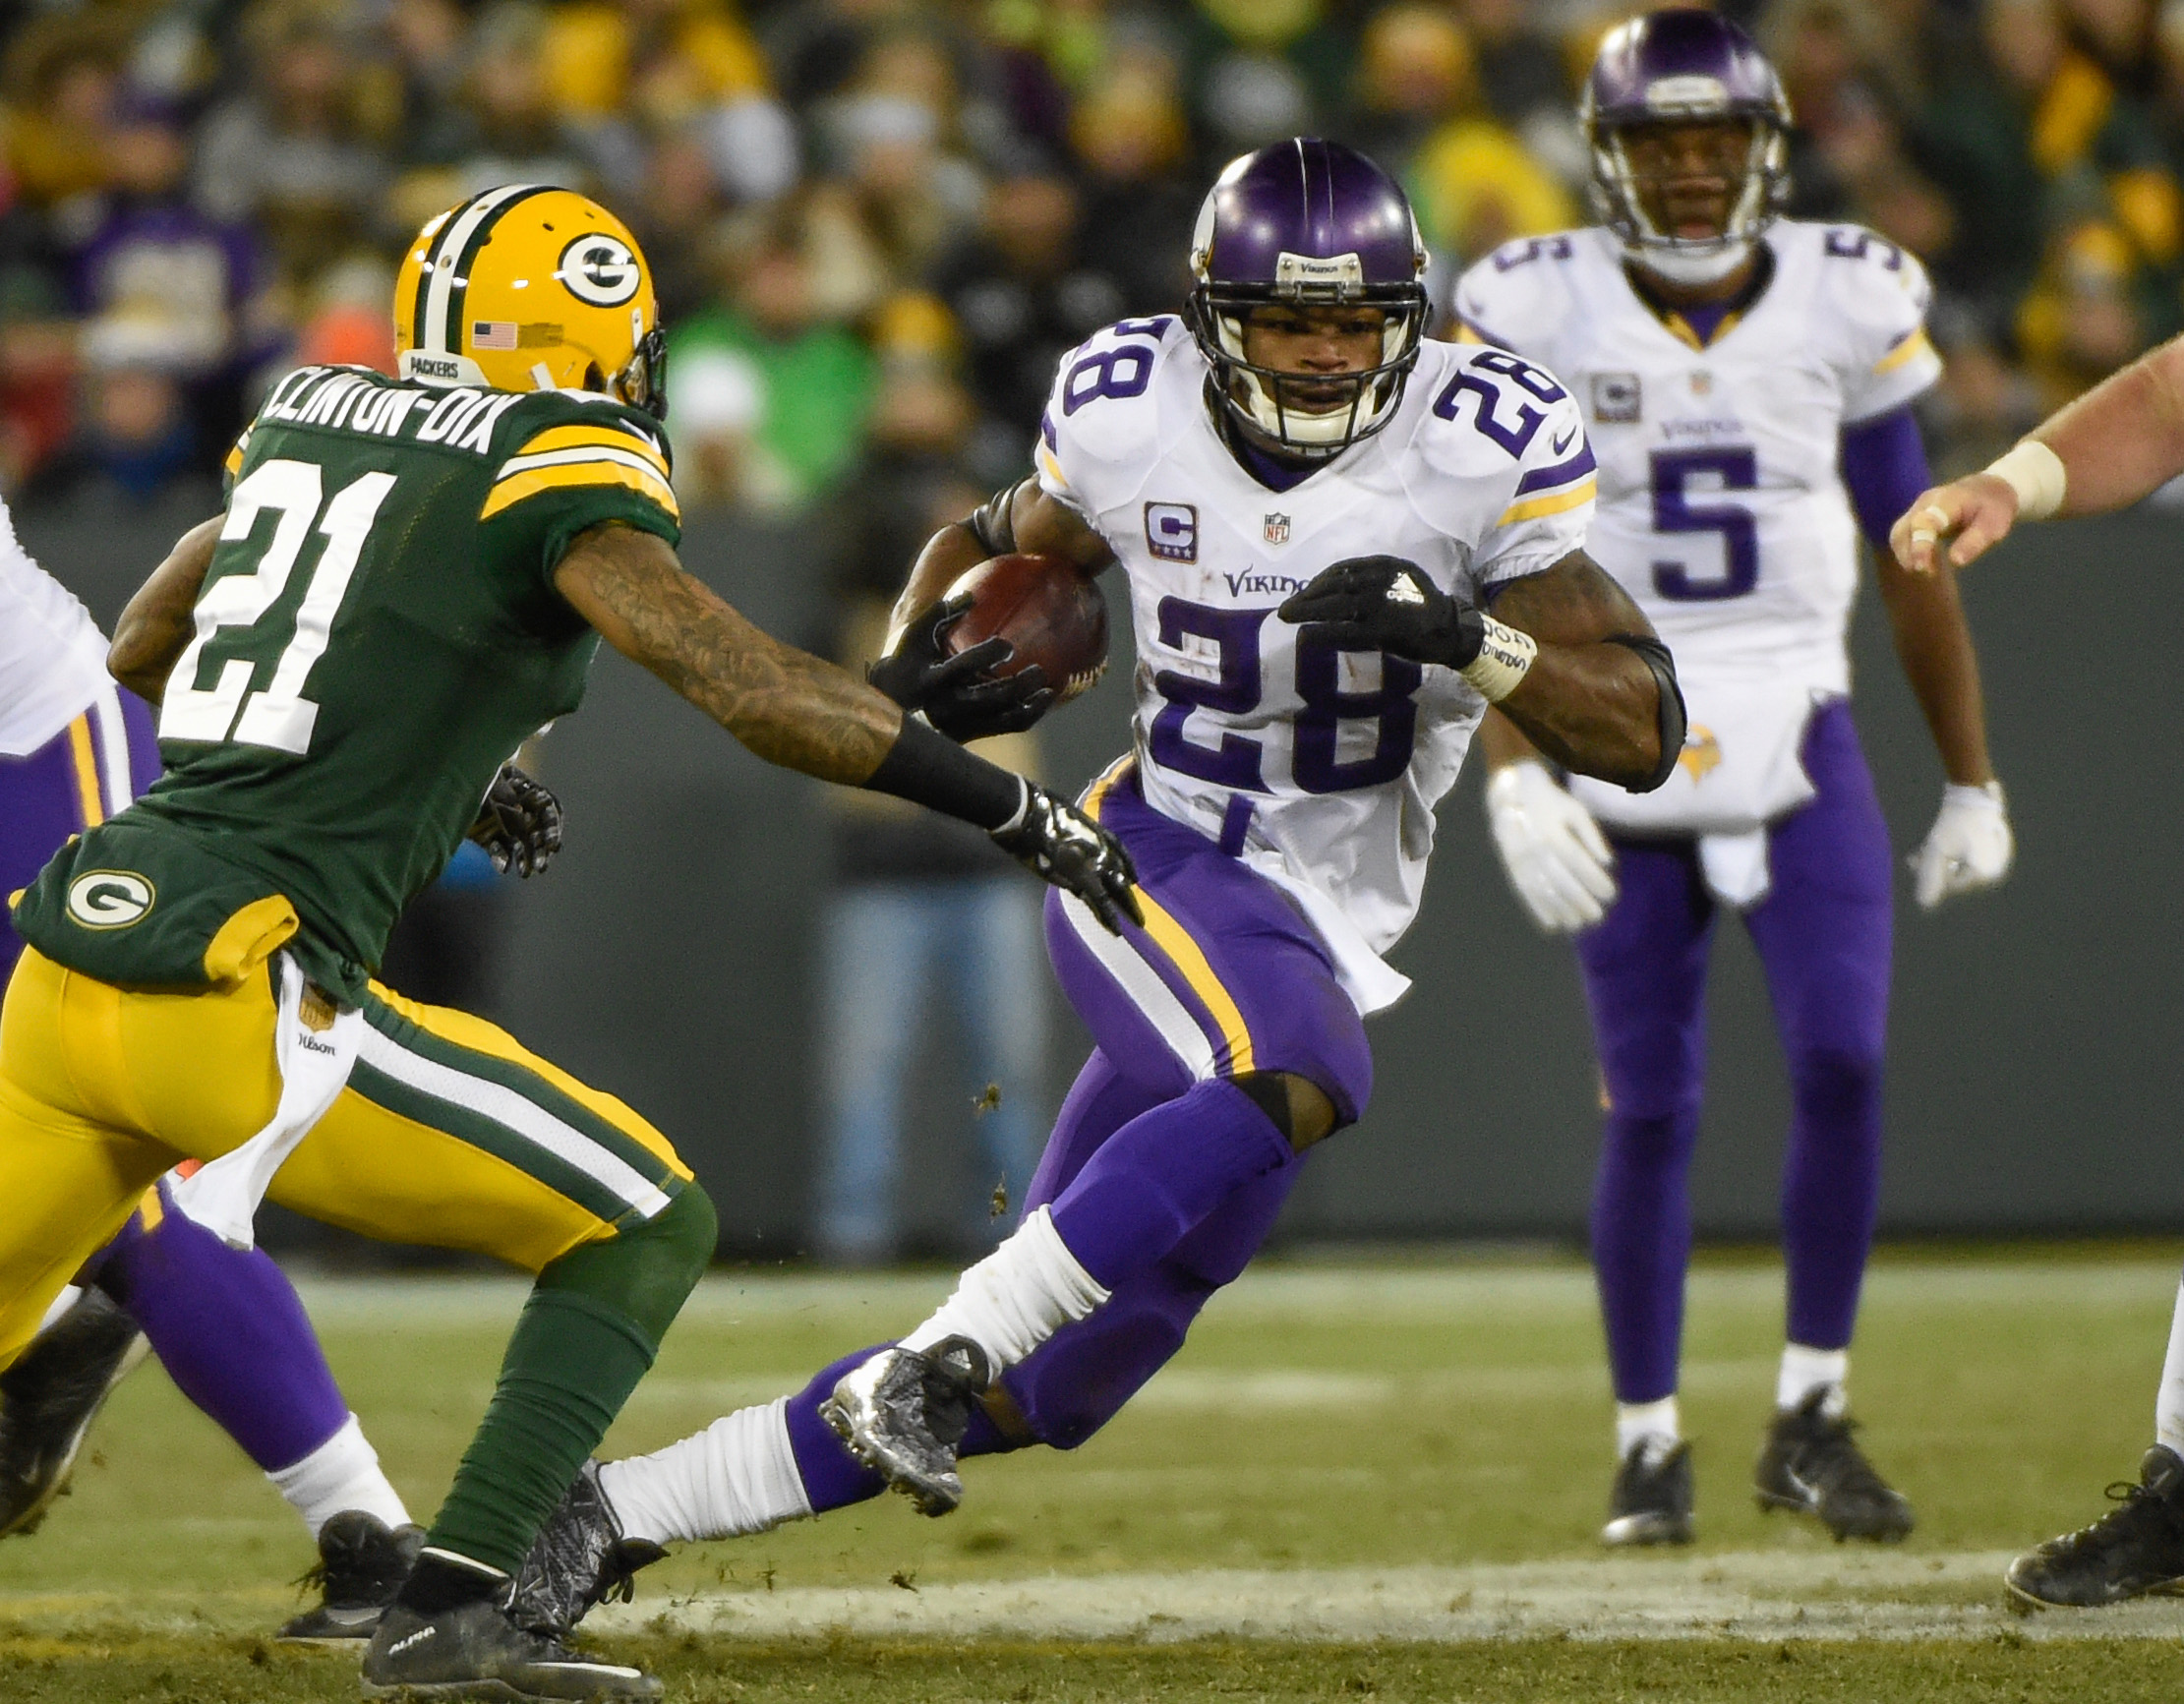 9036830-nfl-minnesota-vikings-at-green-bay-packers